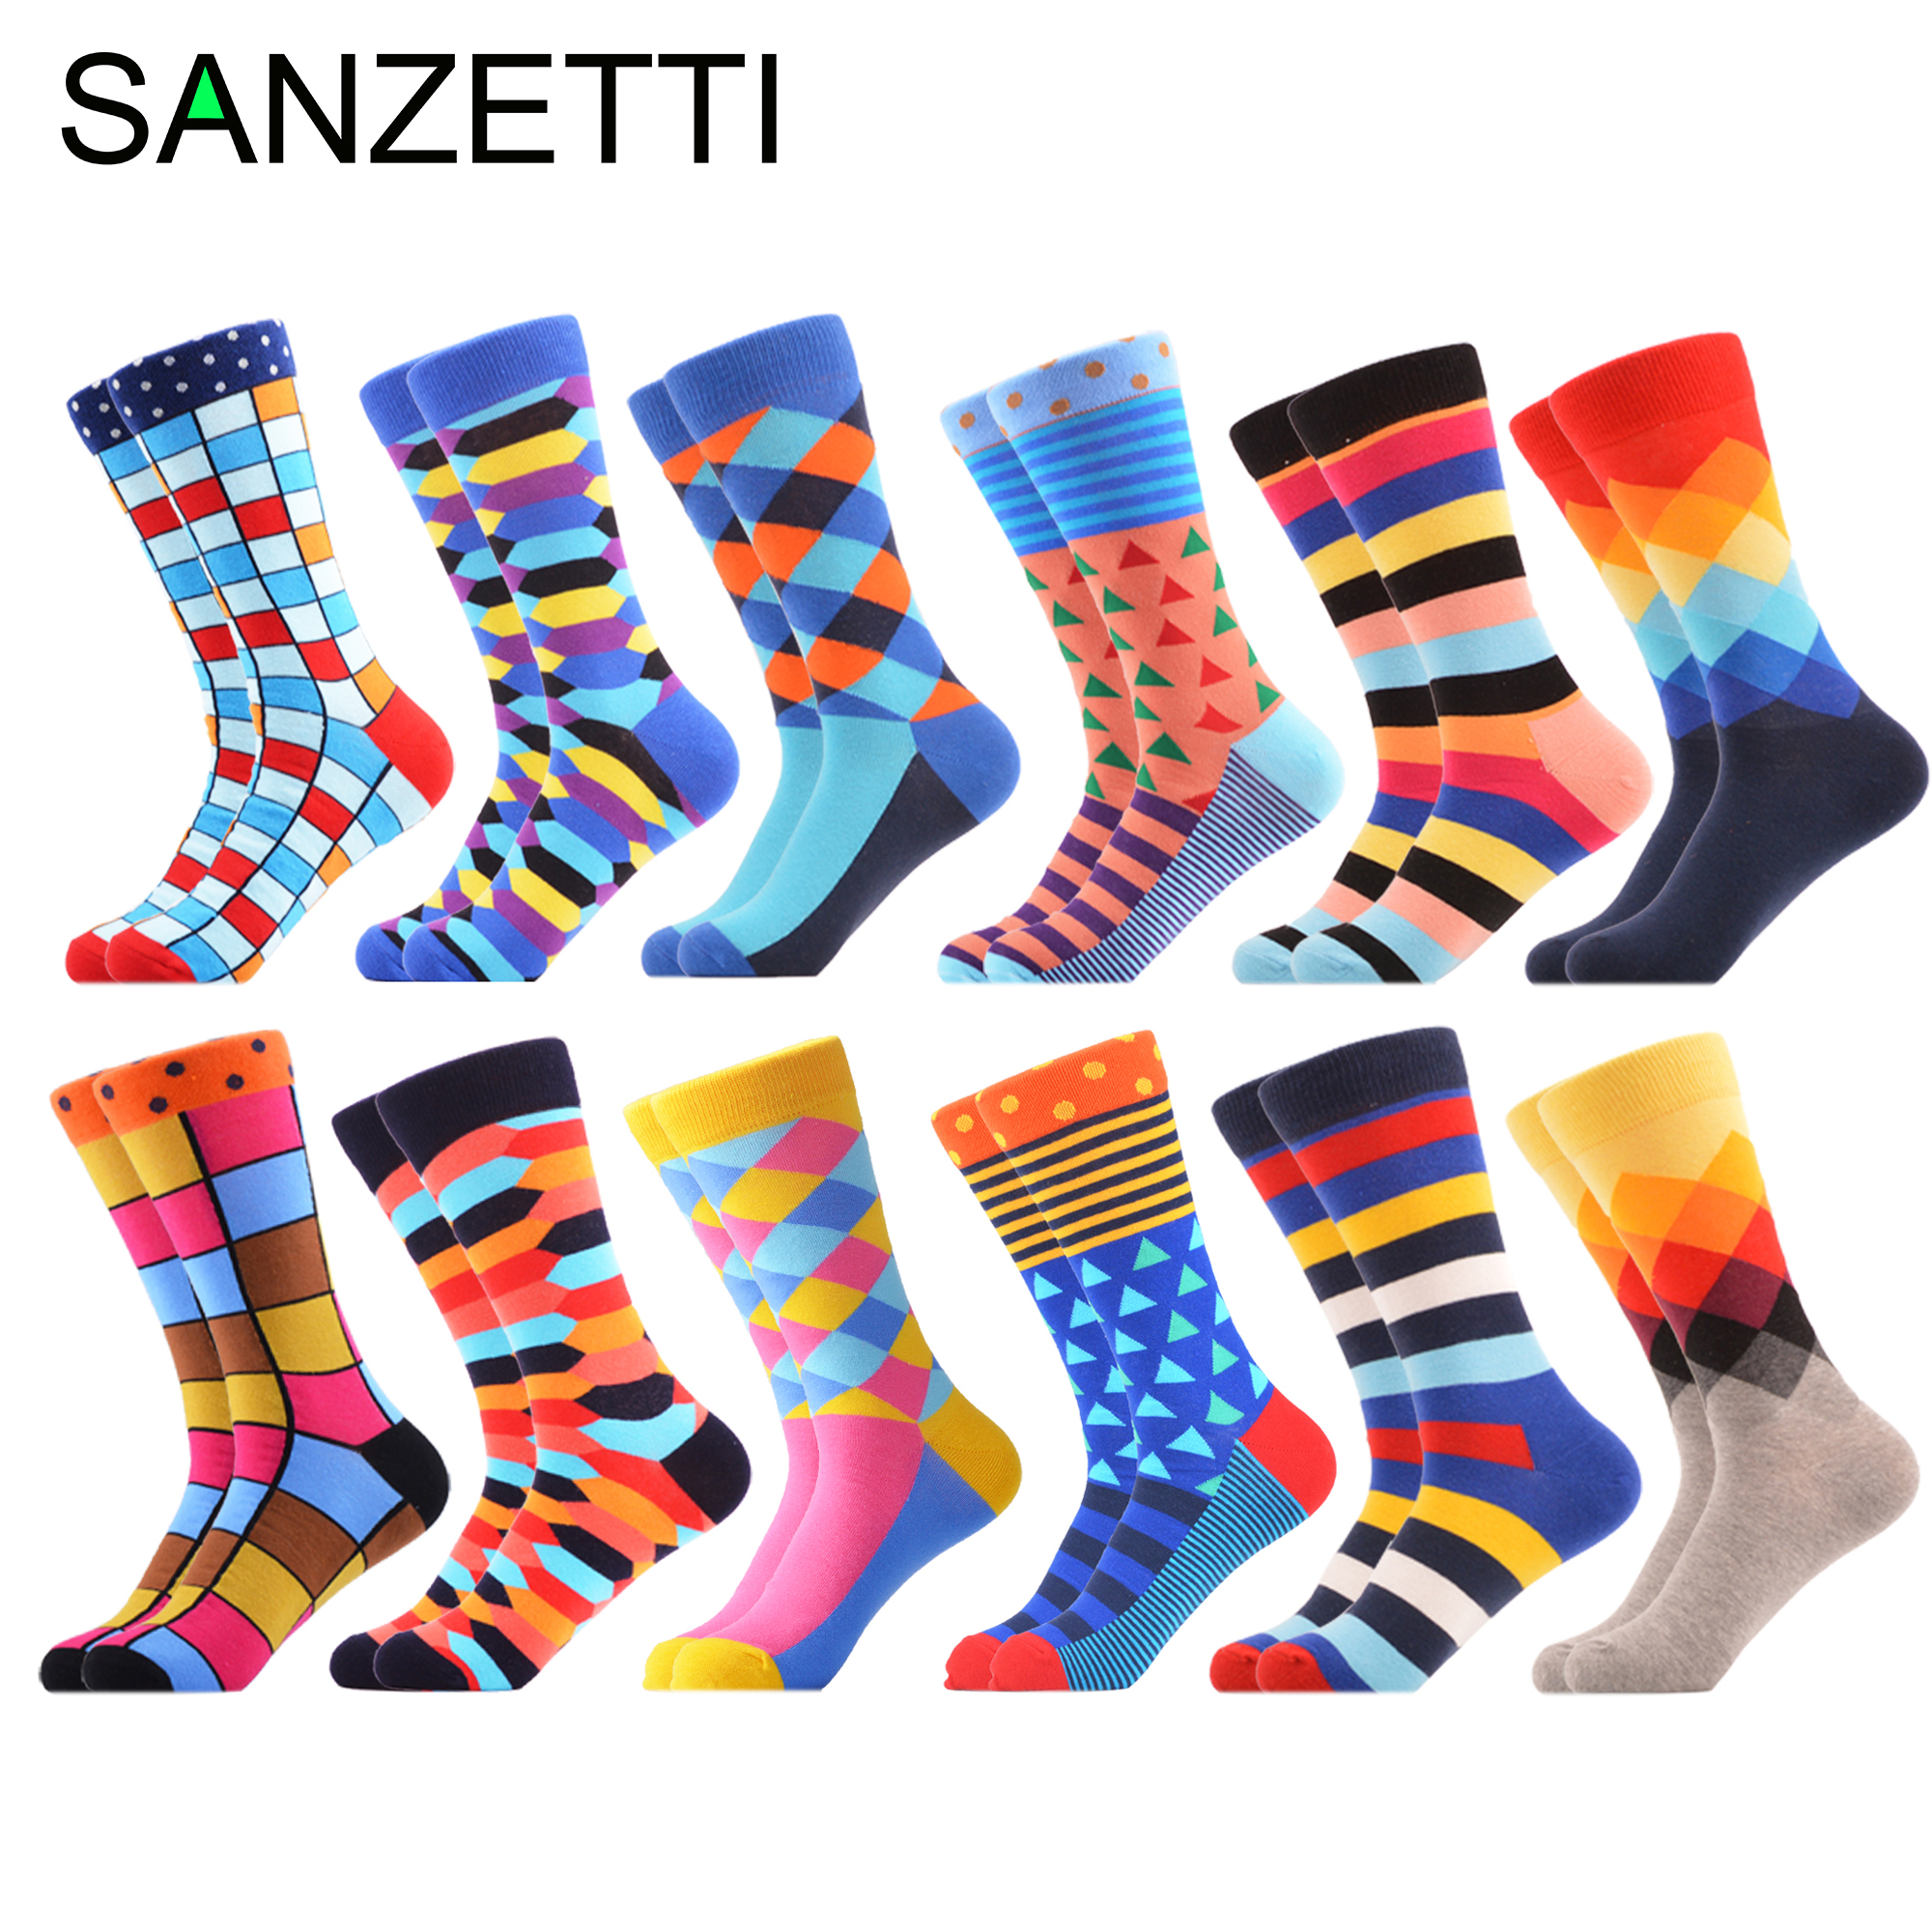 SANZETTI 12 Pairs/Lot 2020 Men Combed Cotton Casual Tube Socks Colorful Dress Striped Plaid Comfortable Party Gift Classic Socks